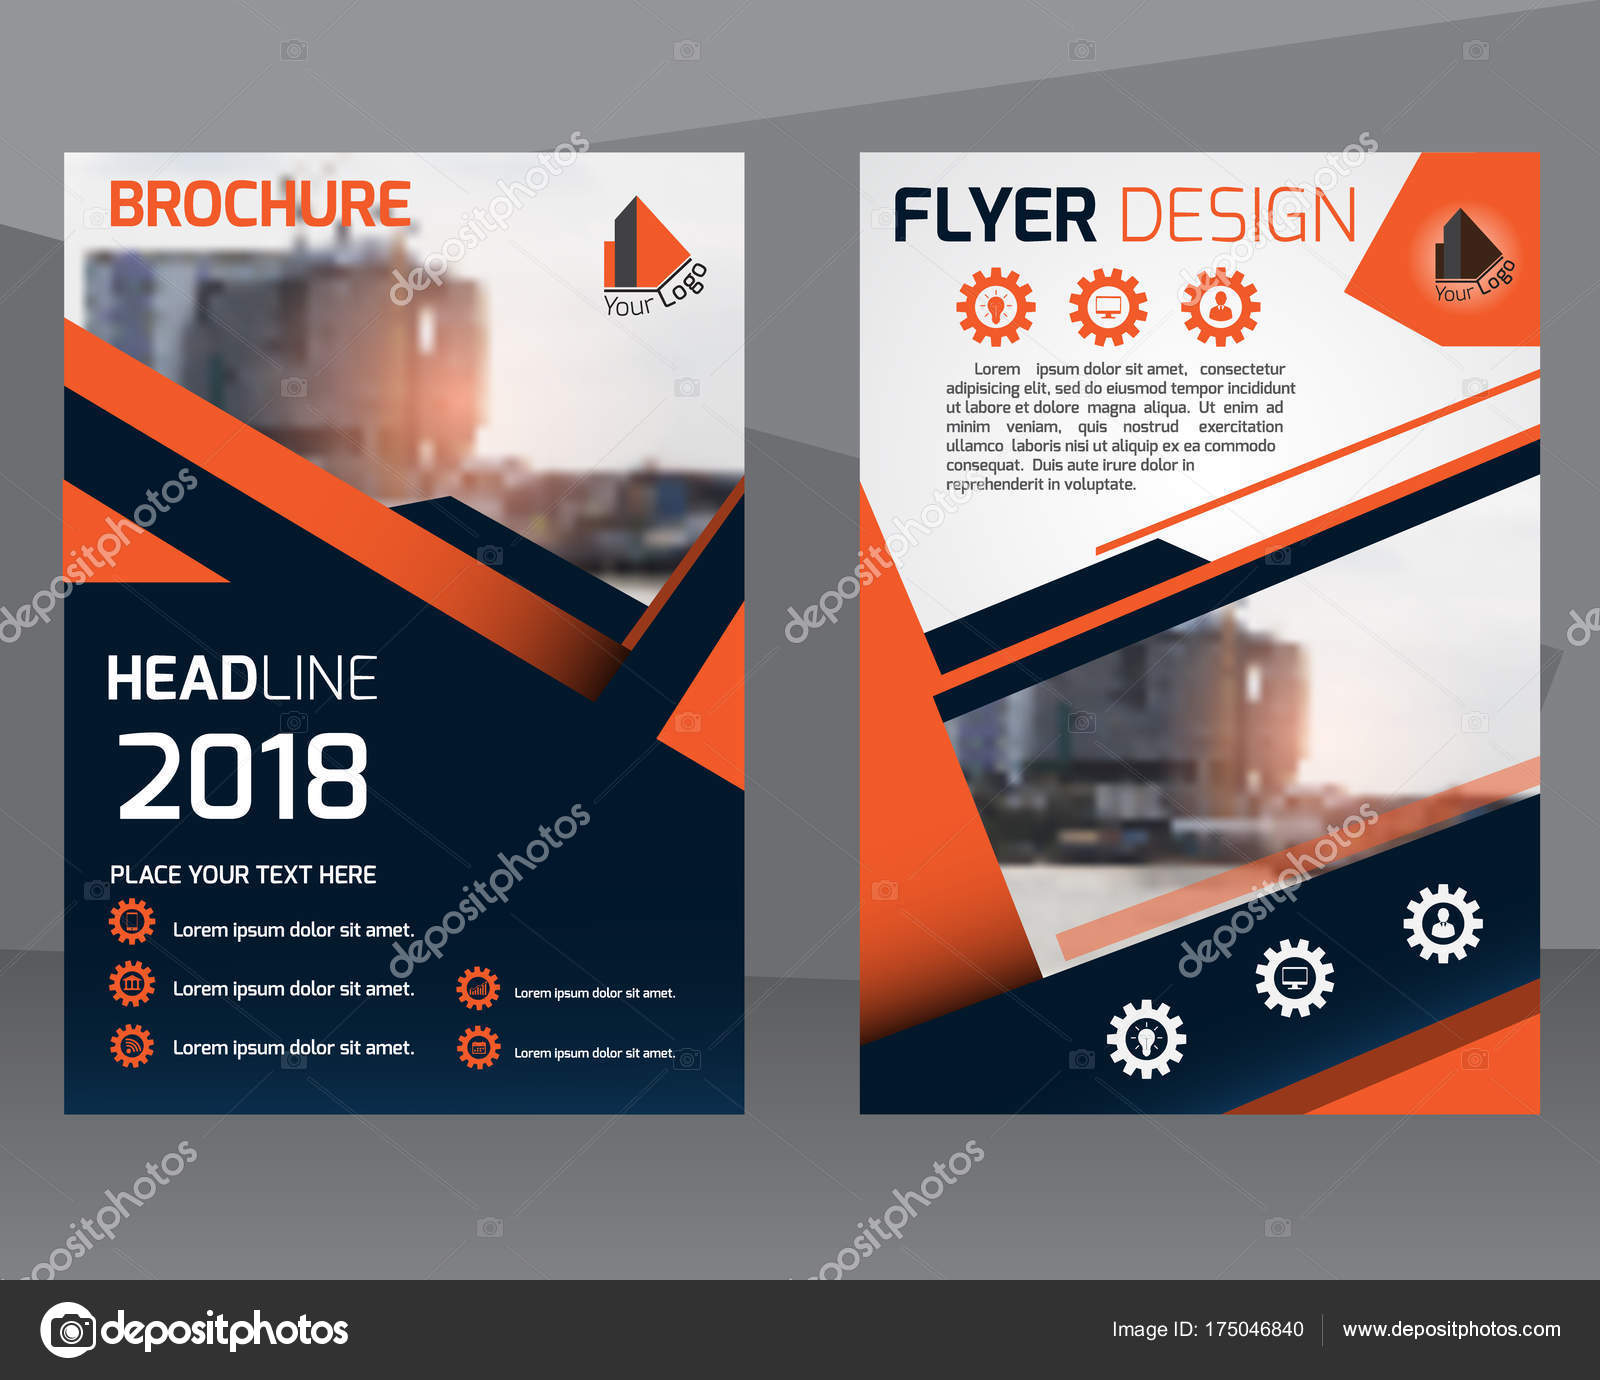 poster flyer pamphlet brochure cover design layout template with